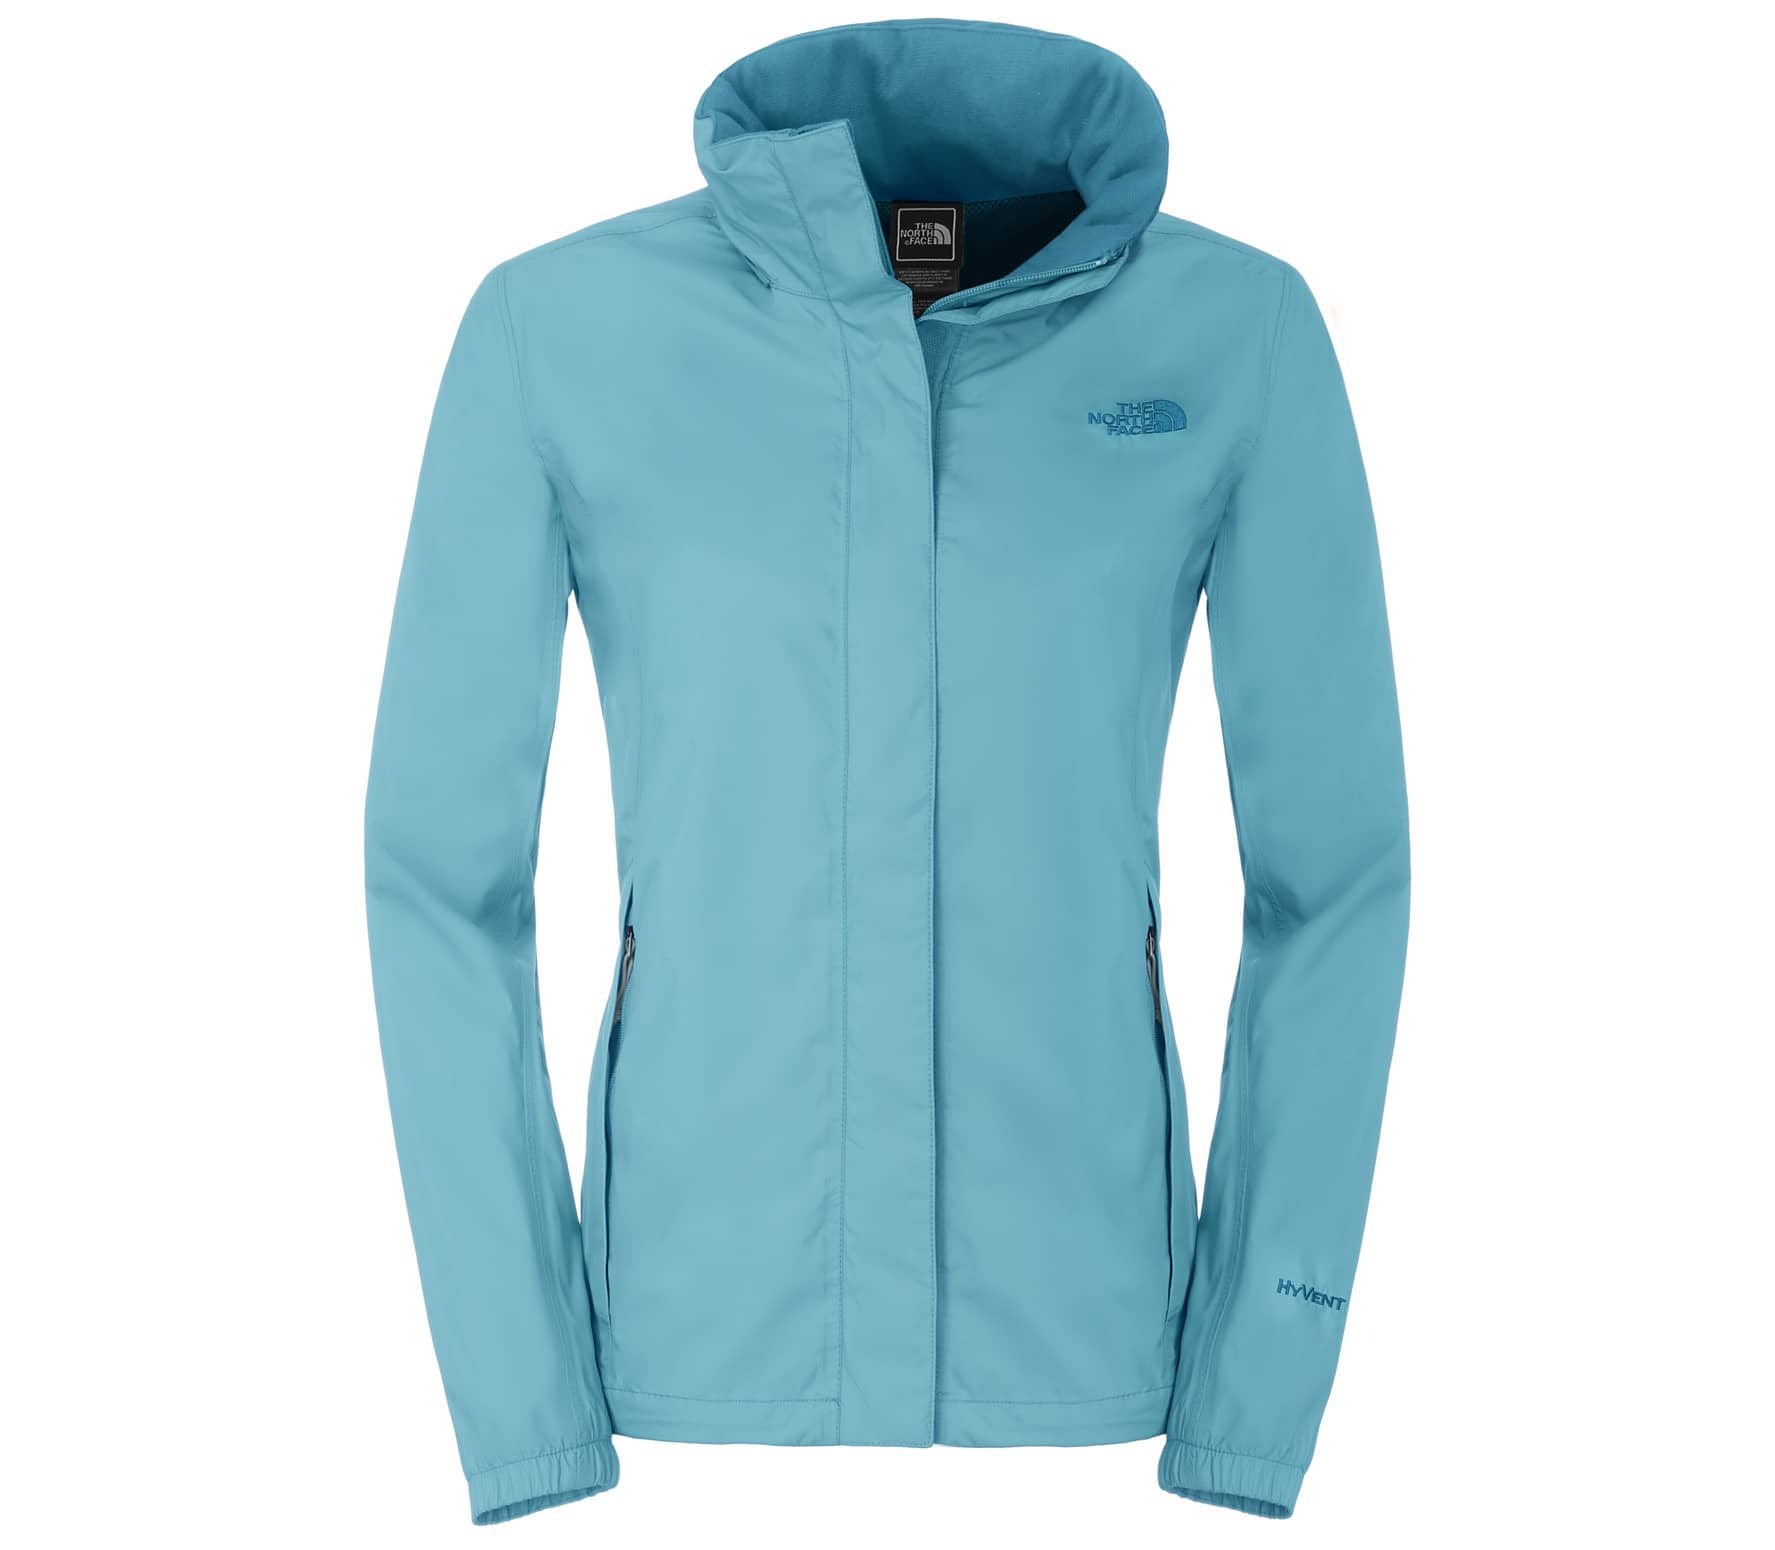 Face Resolve North North Face The Resolve Mujer The kX8nPZNO0w